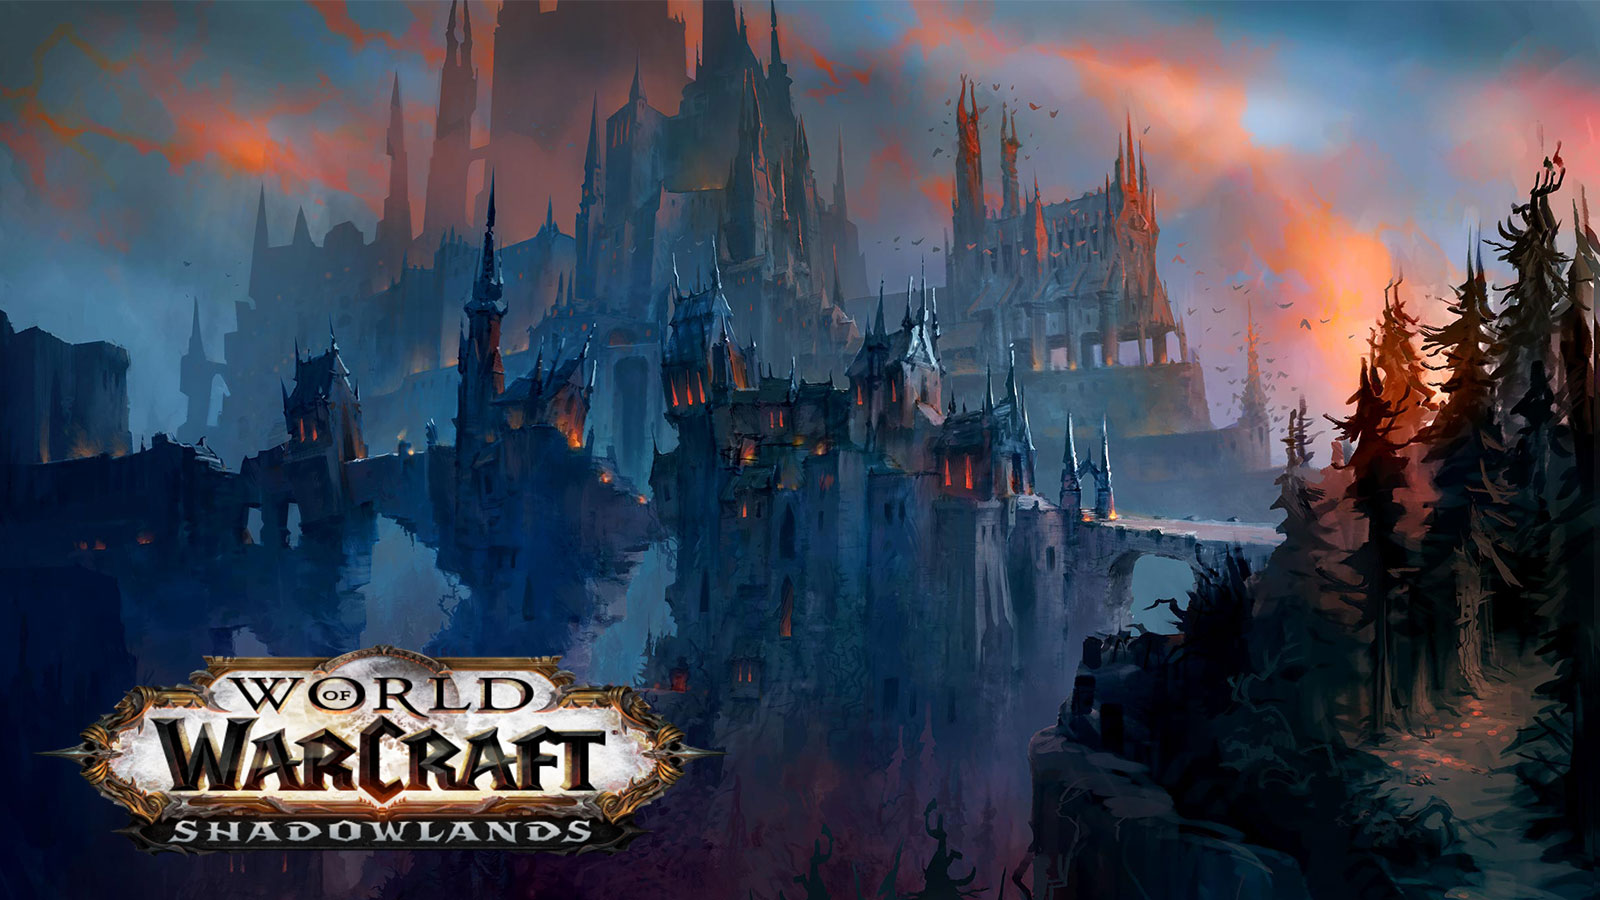 WoW Shadowlands multiboxing update